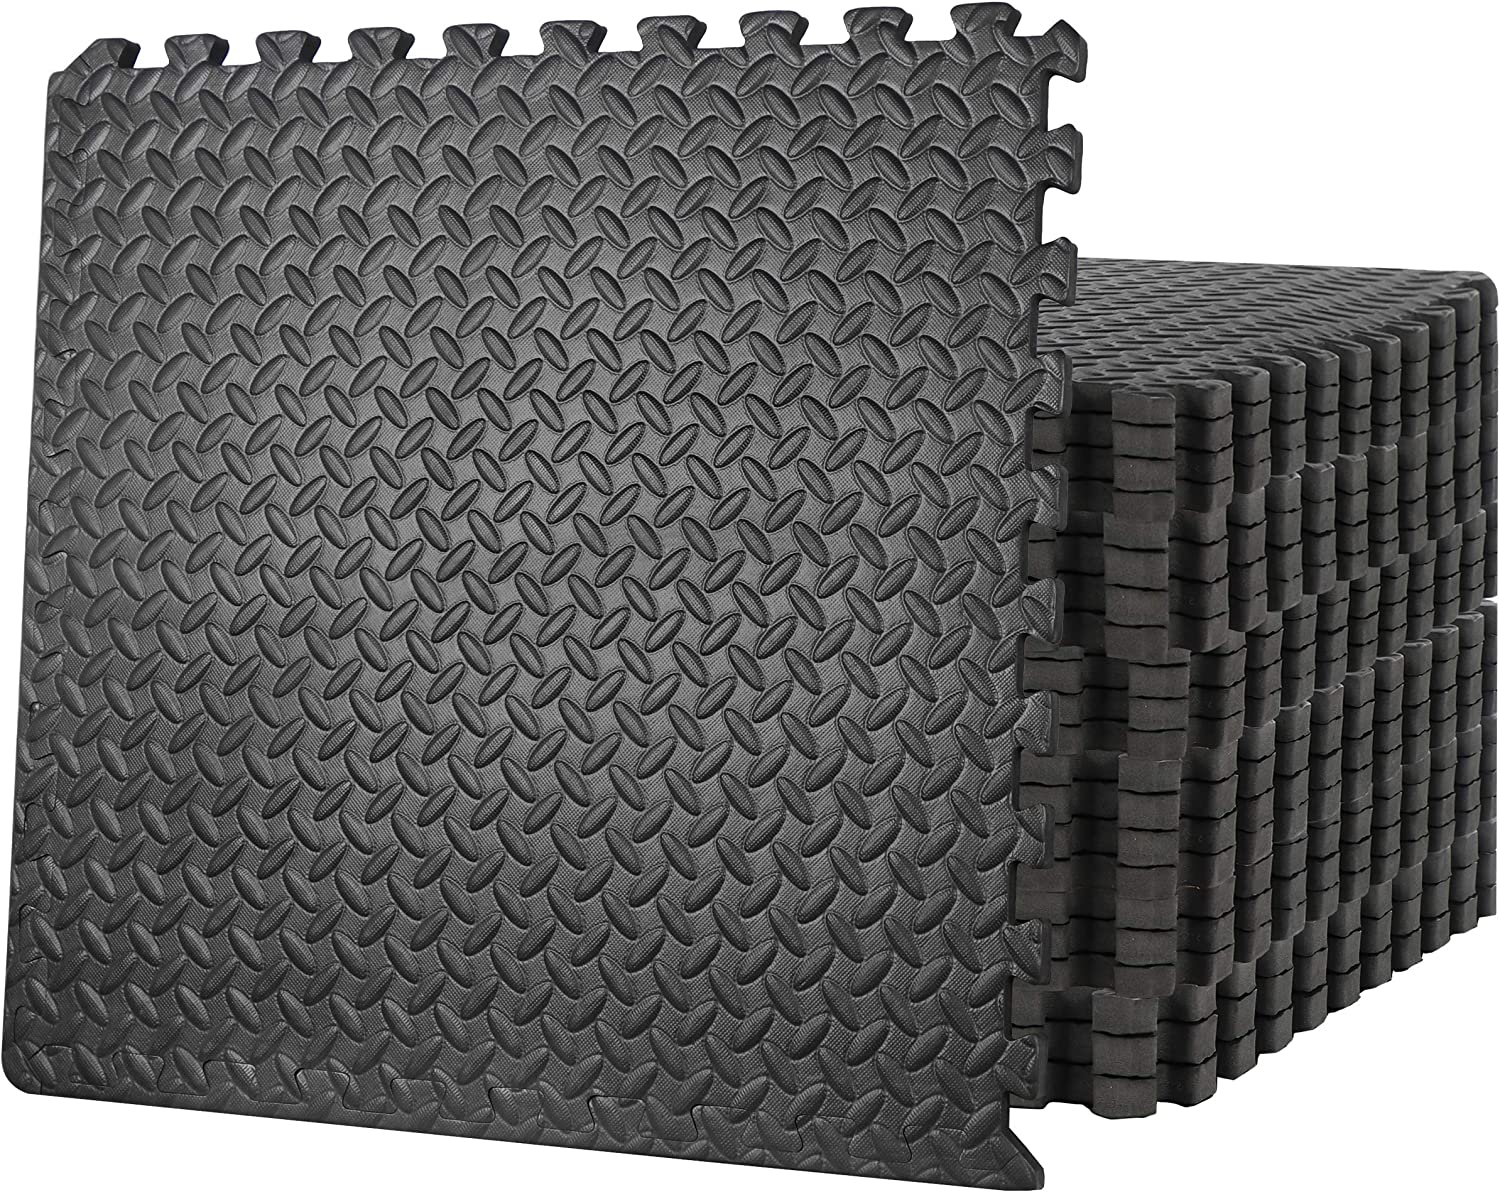 Zeny Foam Interlocking Tiles